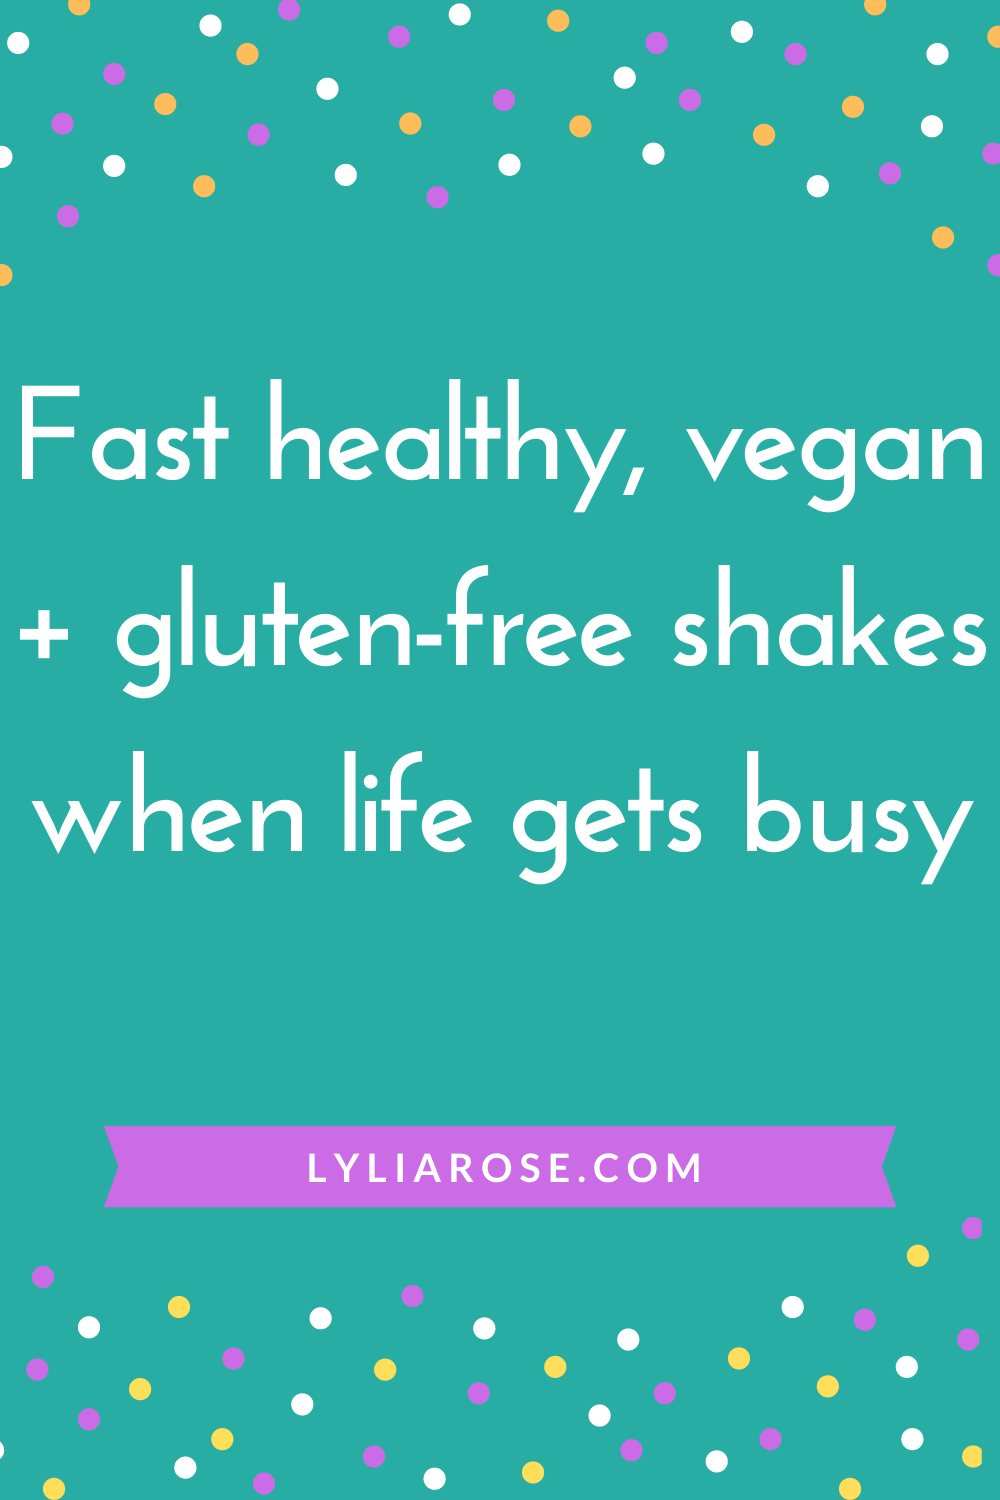 Fast healthy, vegan + gluten-free shakes when life gets busy